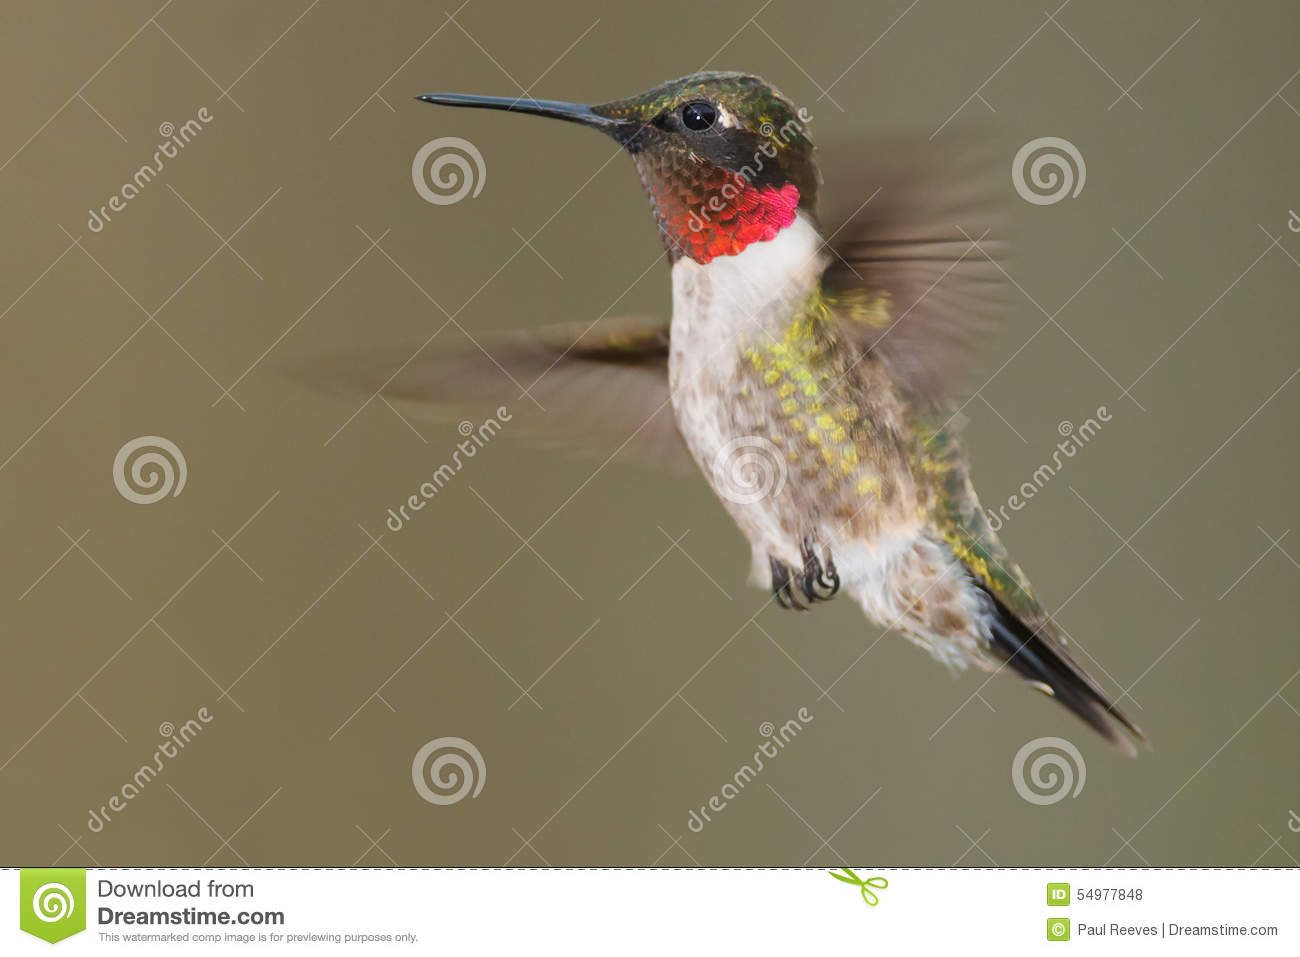 Kolibrie robijnrood-Throated